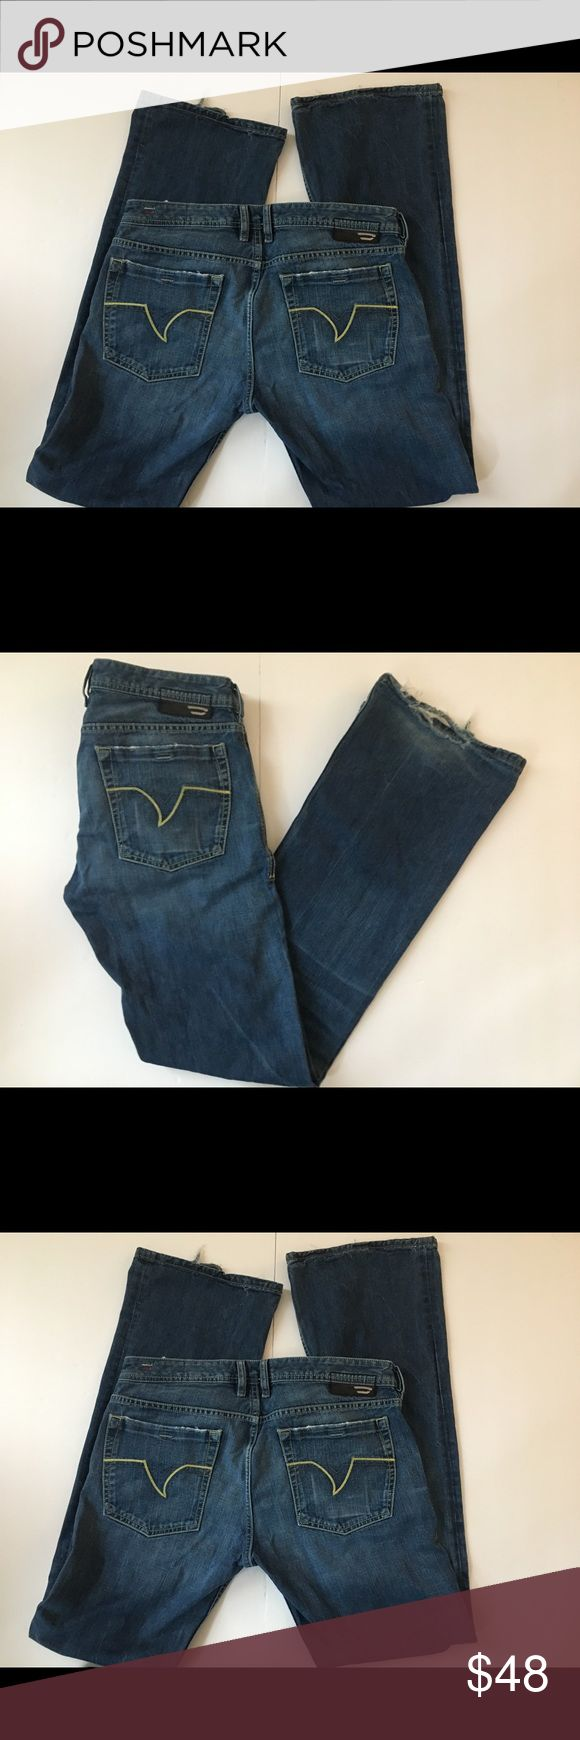 """Men's Diesel Zathan Jeans Size 34""""/34"""" Men's Diesel Zathan 👖 Jeans Size 34"""" Medium wash Bootcut jeans with Distressing around edge of  front pockets back pockets and frayed and ripped hems. Waist 34"""" Rise 9.5 Inseam 34"""" Diesel Jeans Bootcut"""